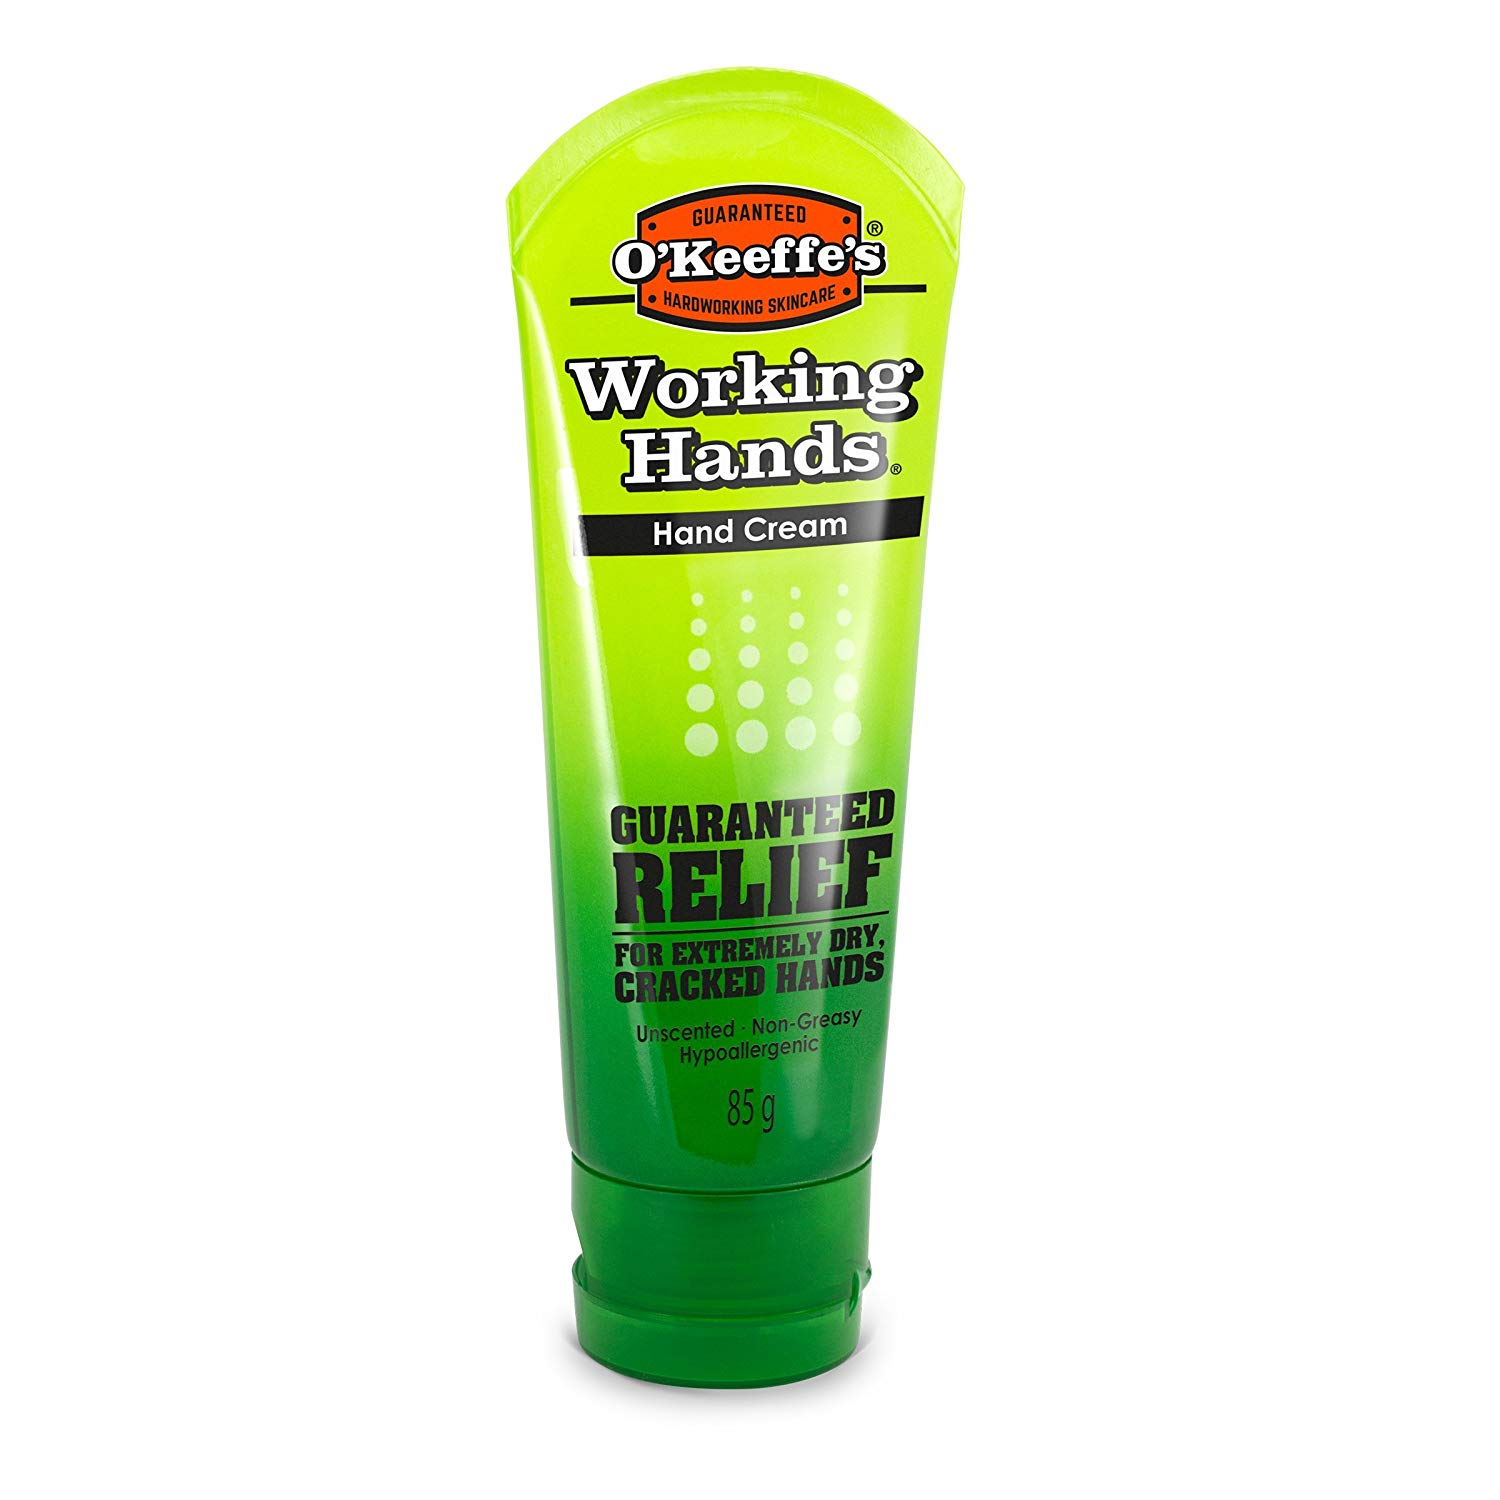 O'Keeffe's Working Hands Hand Cream 3ozの画像